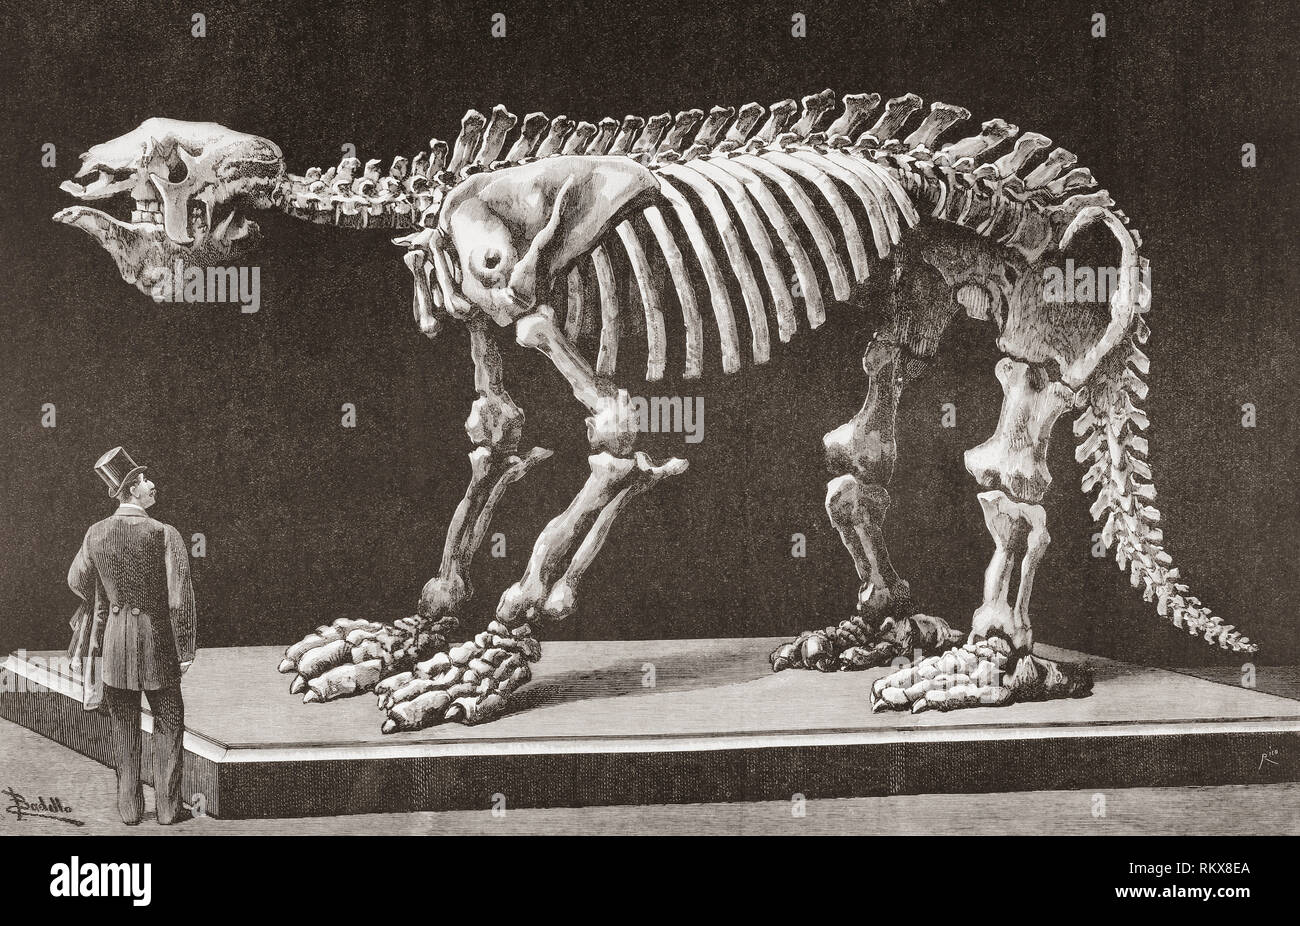 Megatherium americanum, Natural Sciences Museum, Madrid, seen here in the late 19th century.  The first Megatherium discovered in Argentina in 1788 was the first prehistoric animal skeleton mounted in 1795.  From La Ilustracion Espanola y Americana, published 1892. - Stock Image